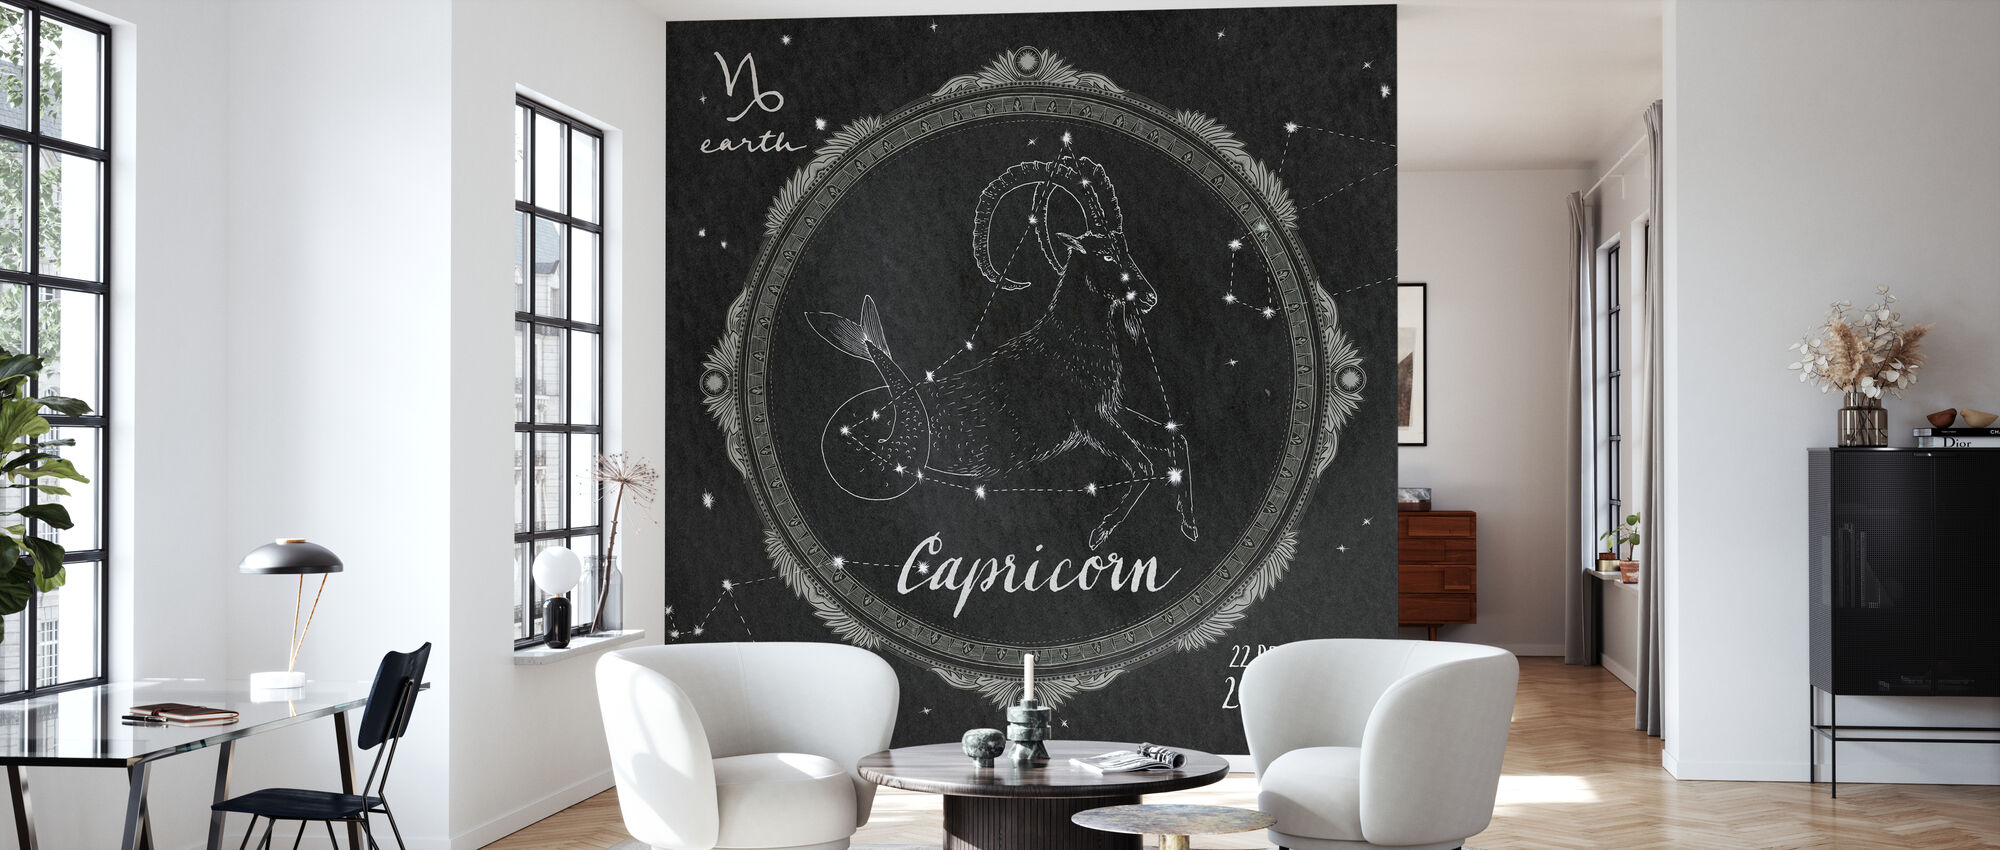 Night Sky Capricorn - Wallpaper - Living Room